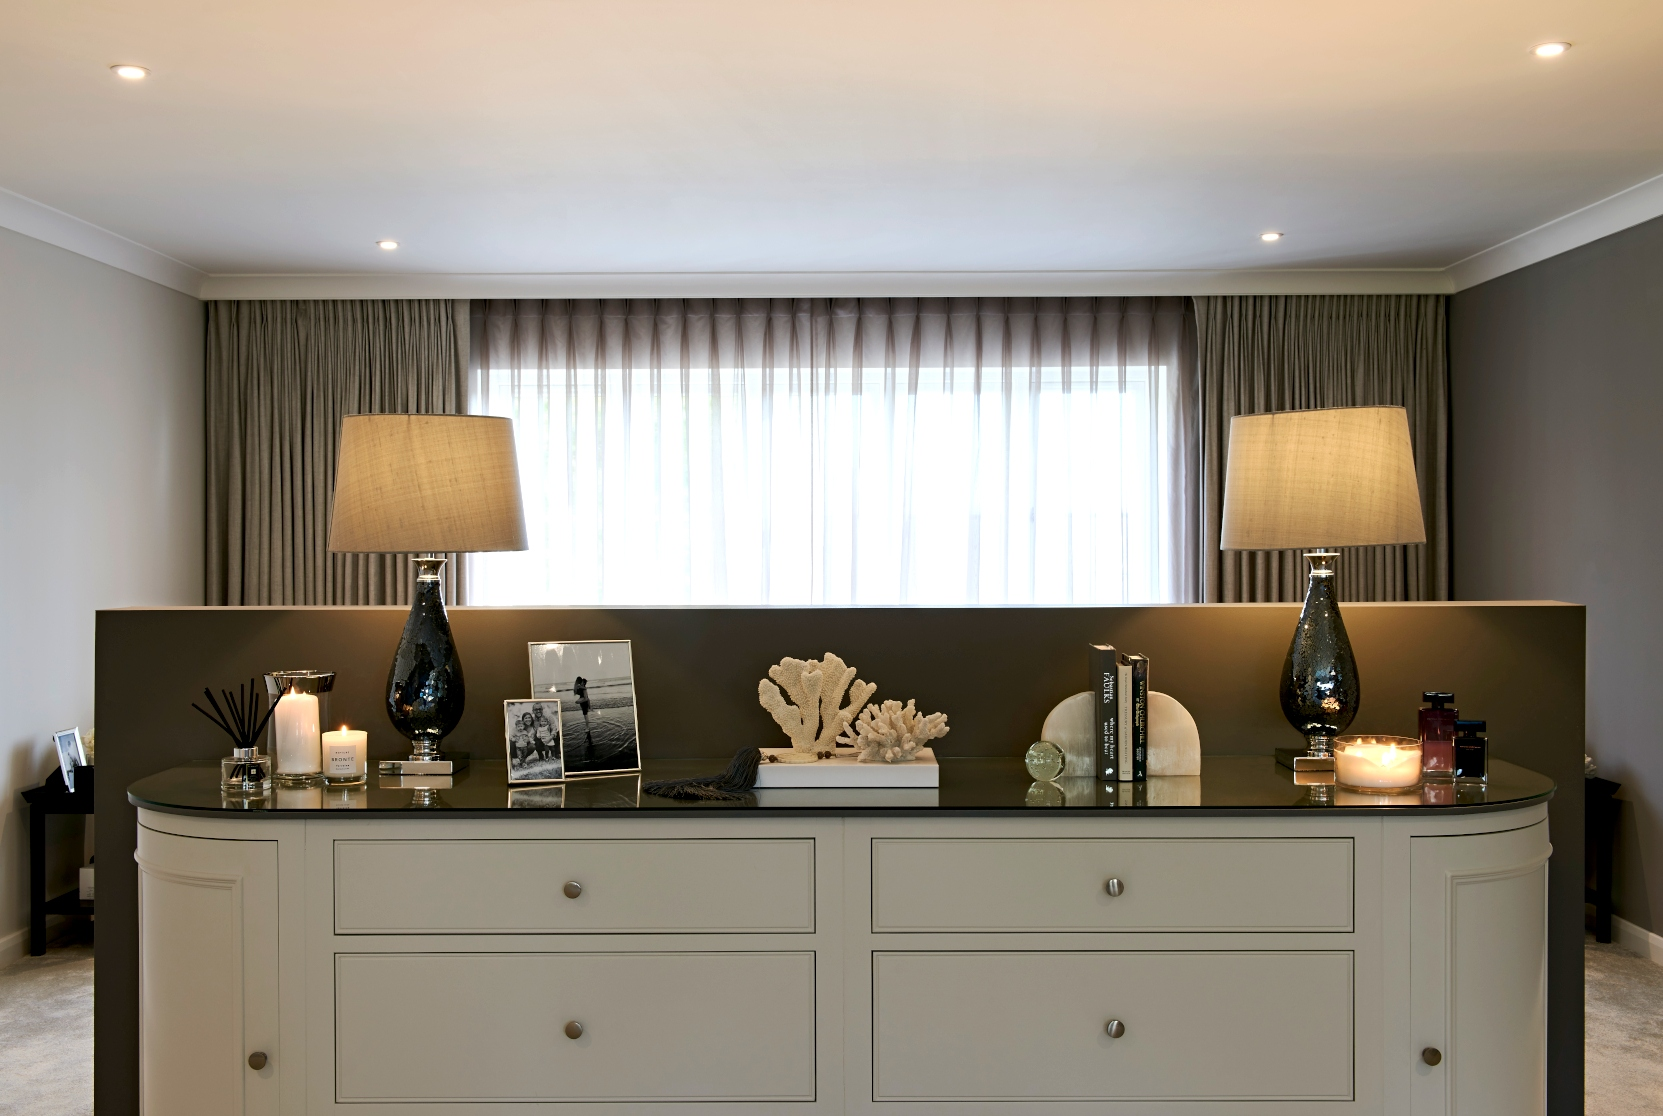 Master bedroom bespoke cabinetry & lamps - Interior Design